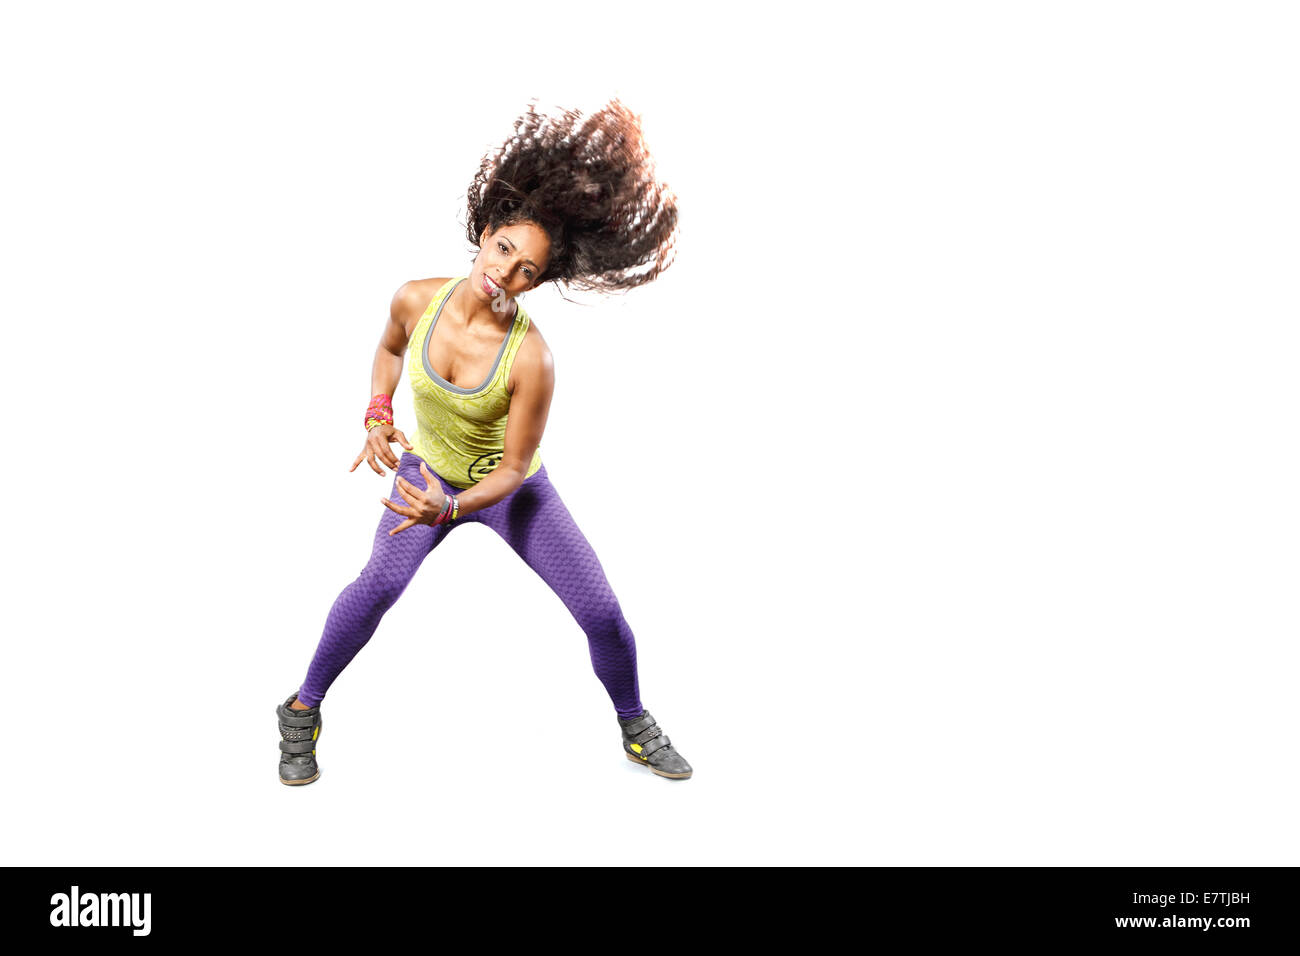 Zumba Fitness Cut Out Stock Images Pictures Alamy Dance Steps Diagram Basic Young Woman At Exercise Or Dancing Image